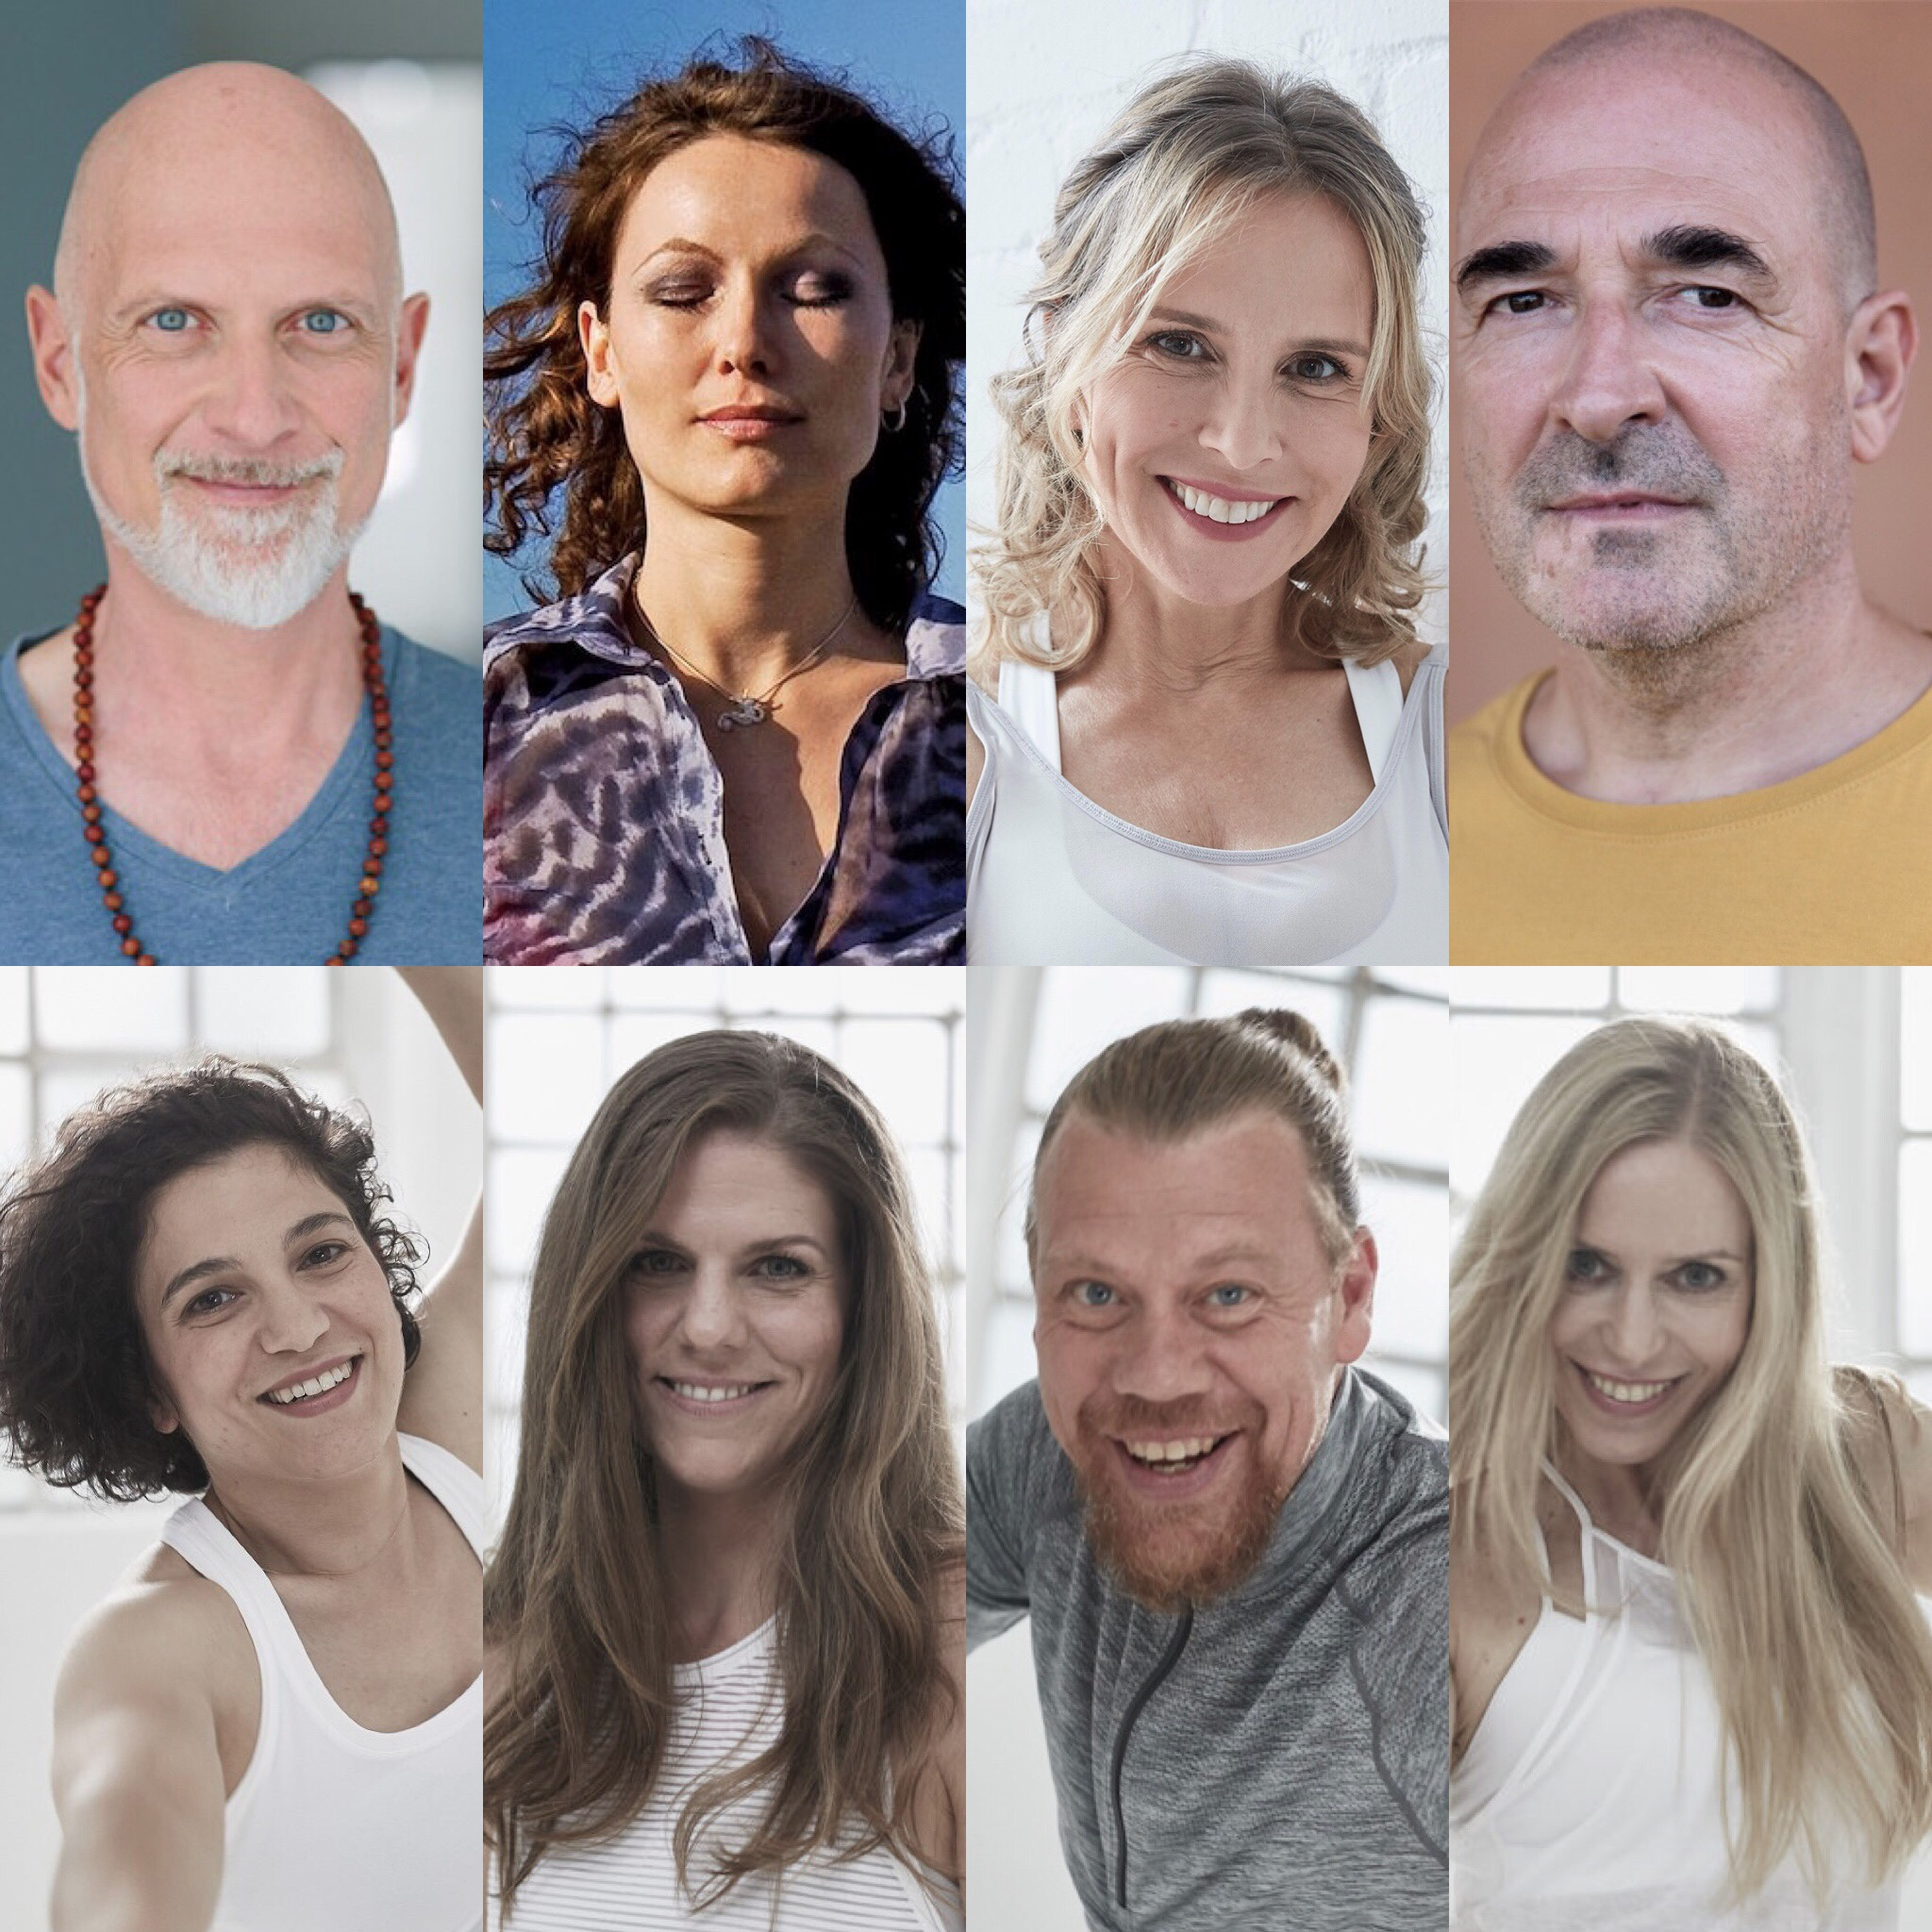 1. Meditations-Conference Hamburg 2020 presented by Power Yoga Institute